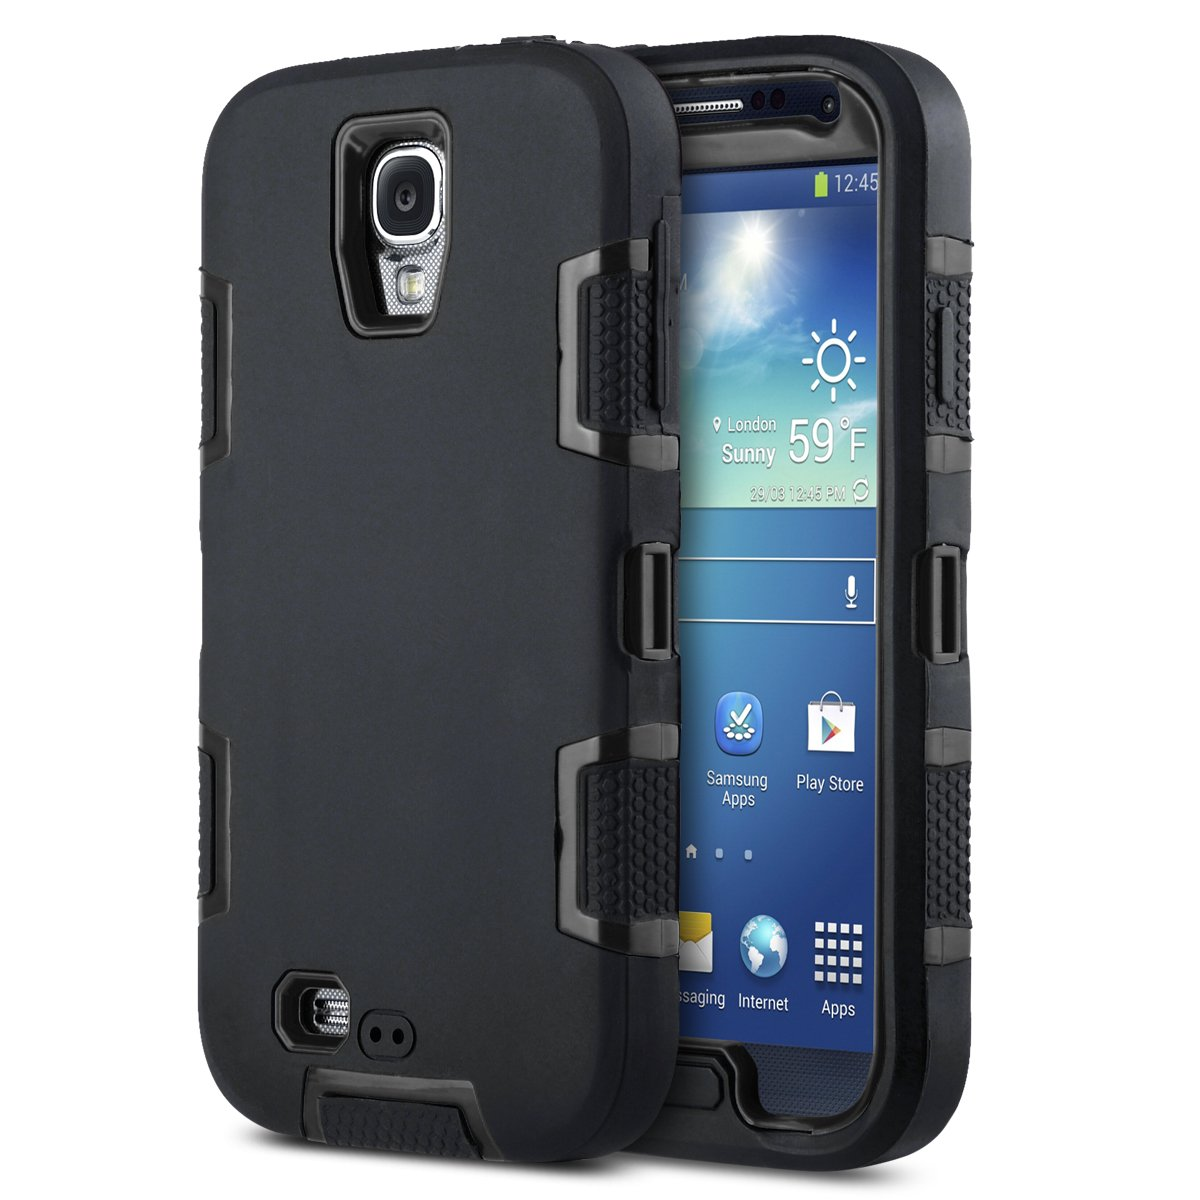 the latest 354da 68345 ULAK Galaxy S4 Case, Knox Armor S4 Case - Shockproof Hybrid Rubber Combo  Case Cover 3in1 Rigid Plastic+Soft Silicone for Samsung Galaxy S4 IV ...